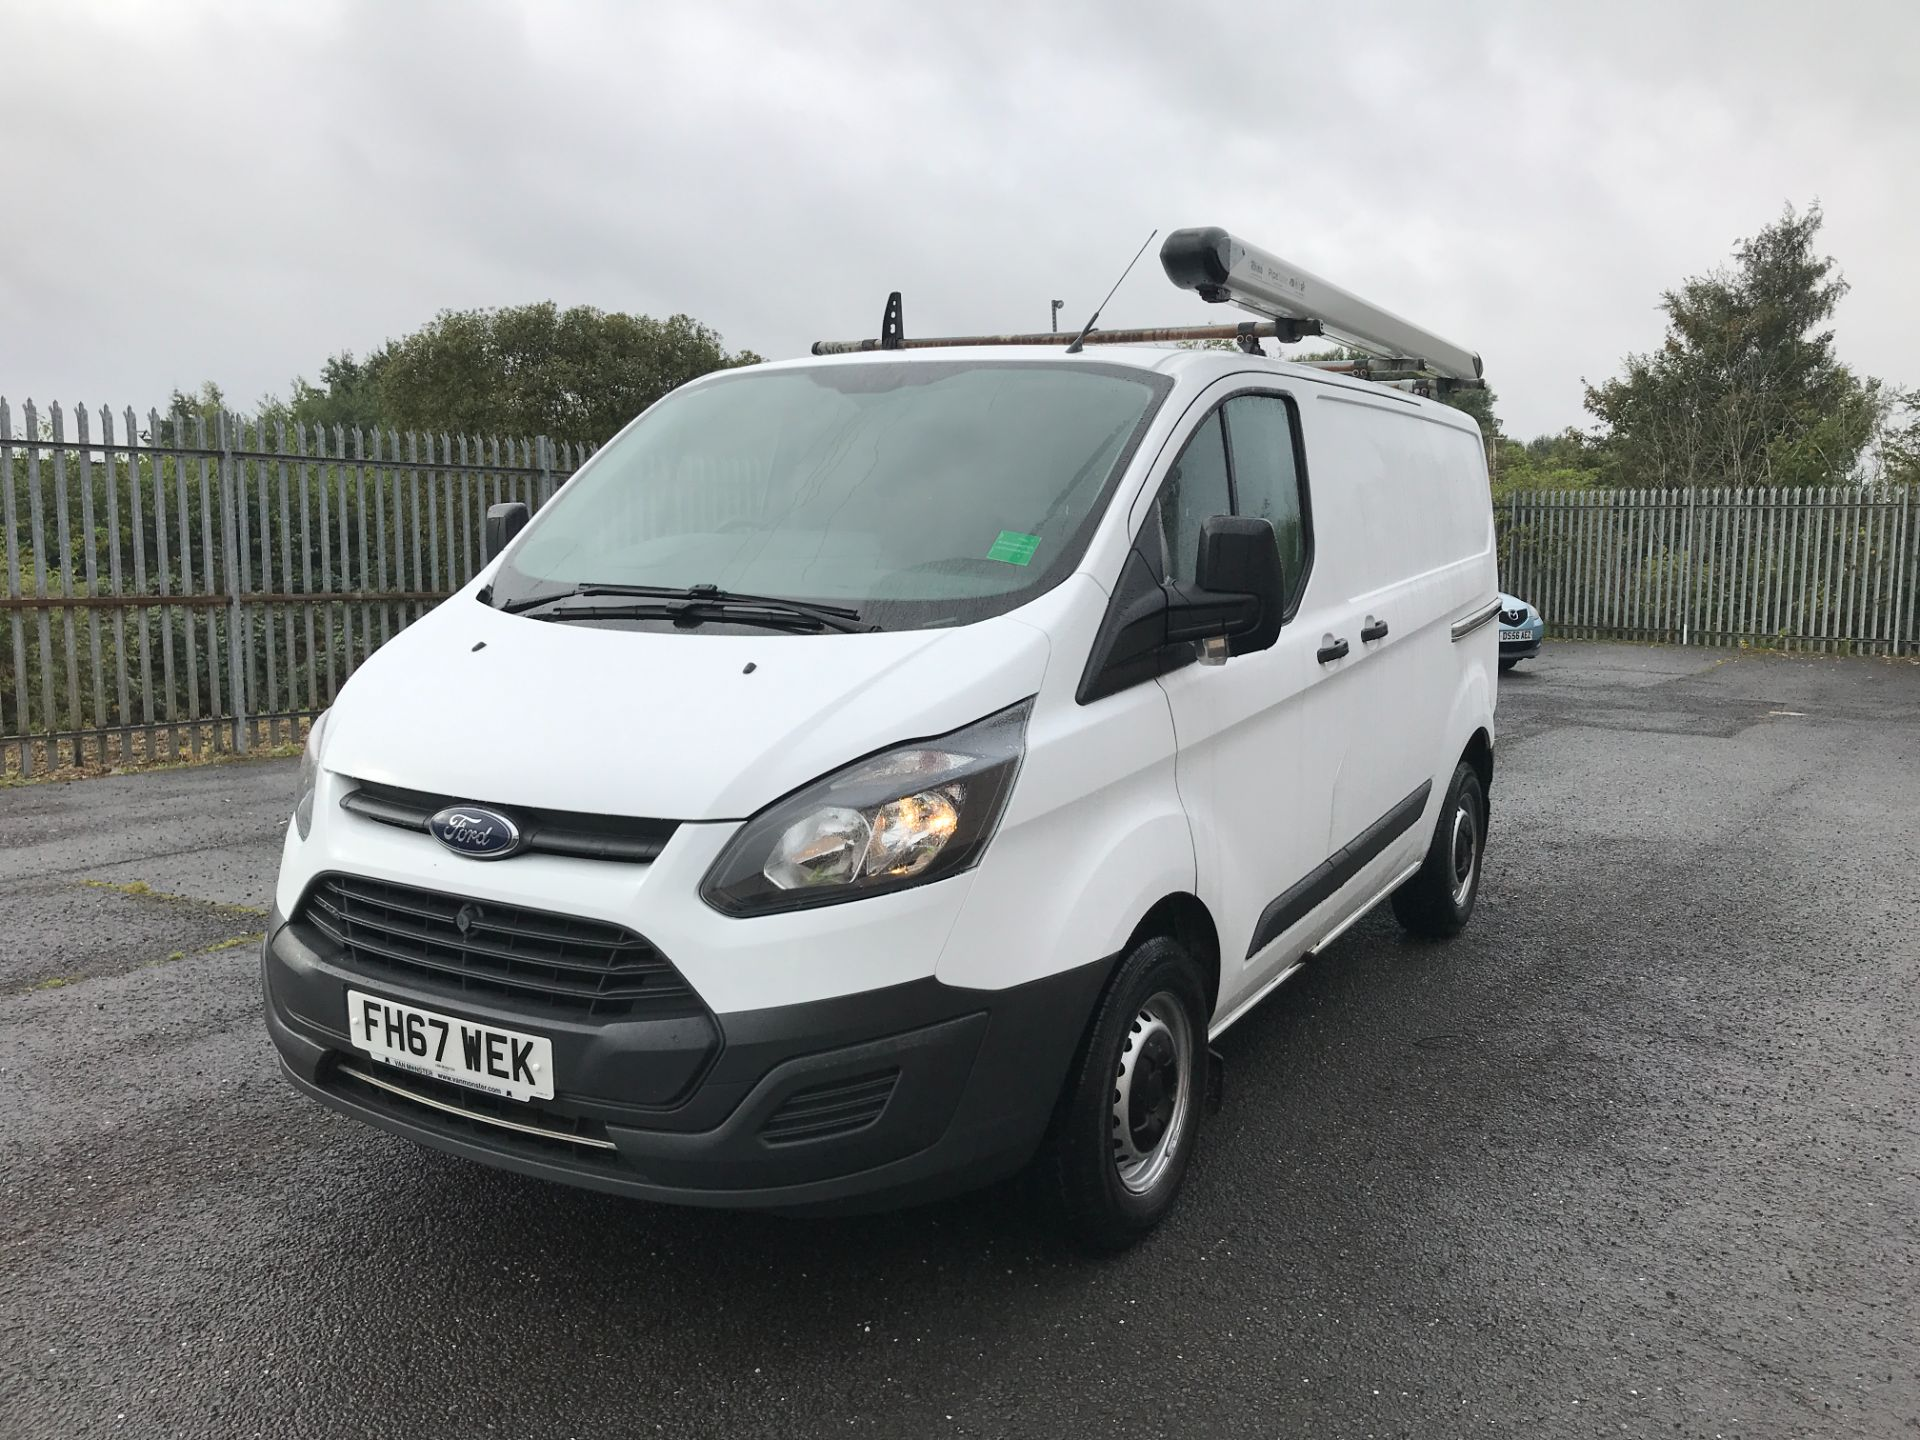 2018 Ford Transit Custom  290 L1 2.0TDCI 105PS LOW ROOF EURO 6 (FH67WEK) Image 2